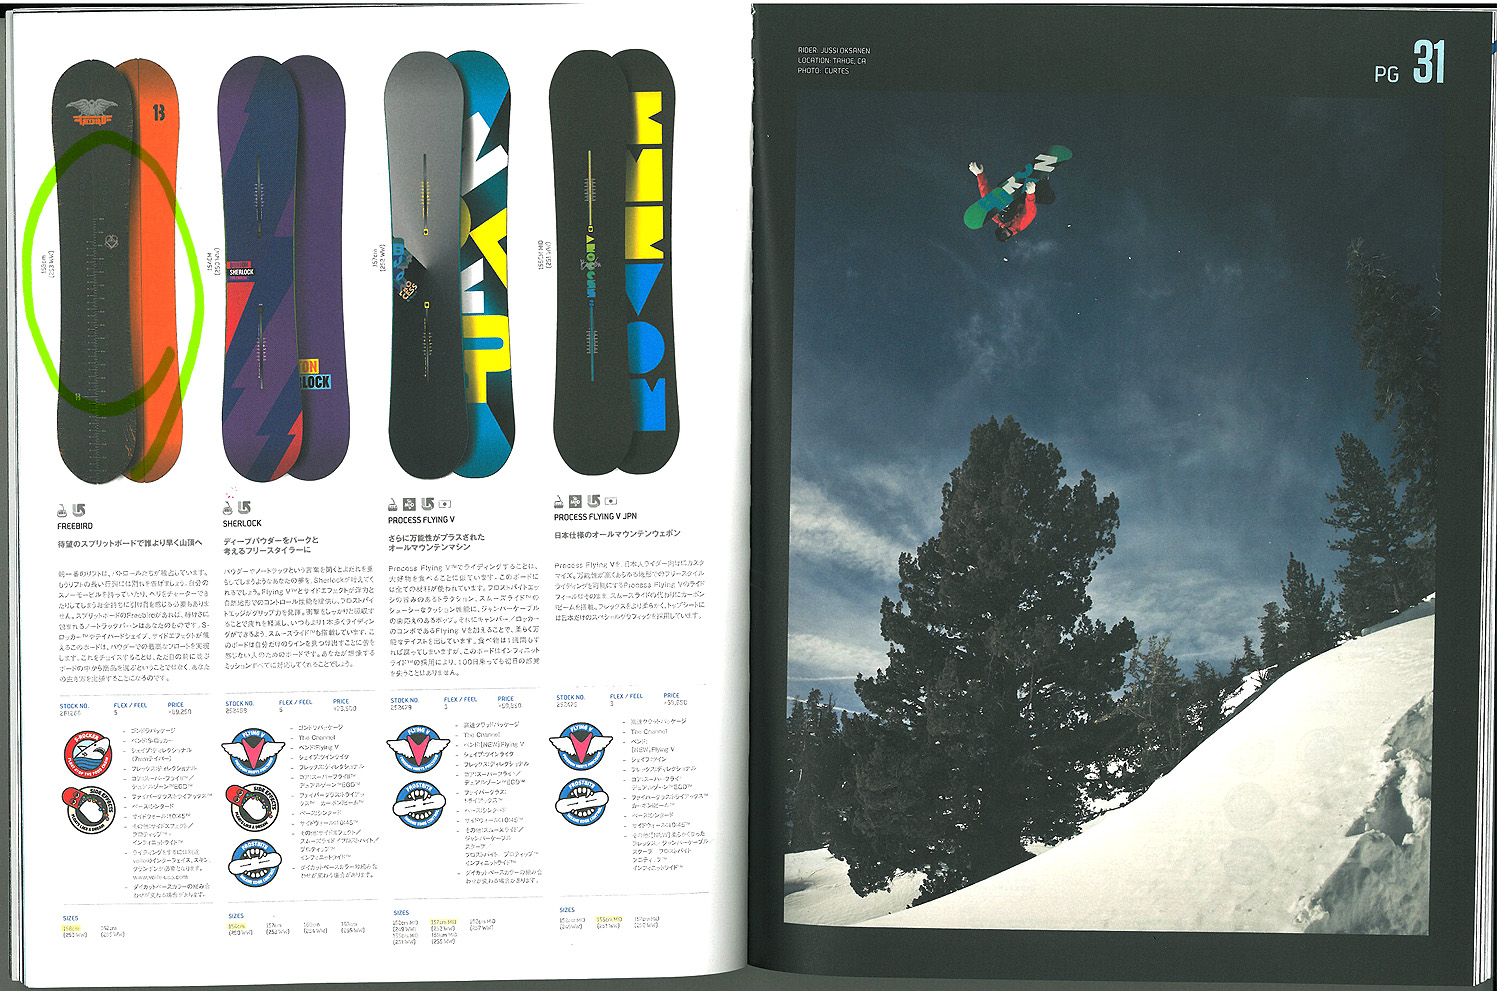 burton2012boards2.jpg